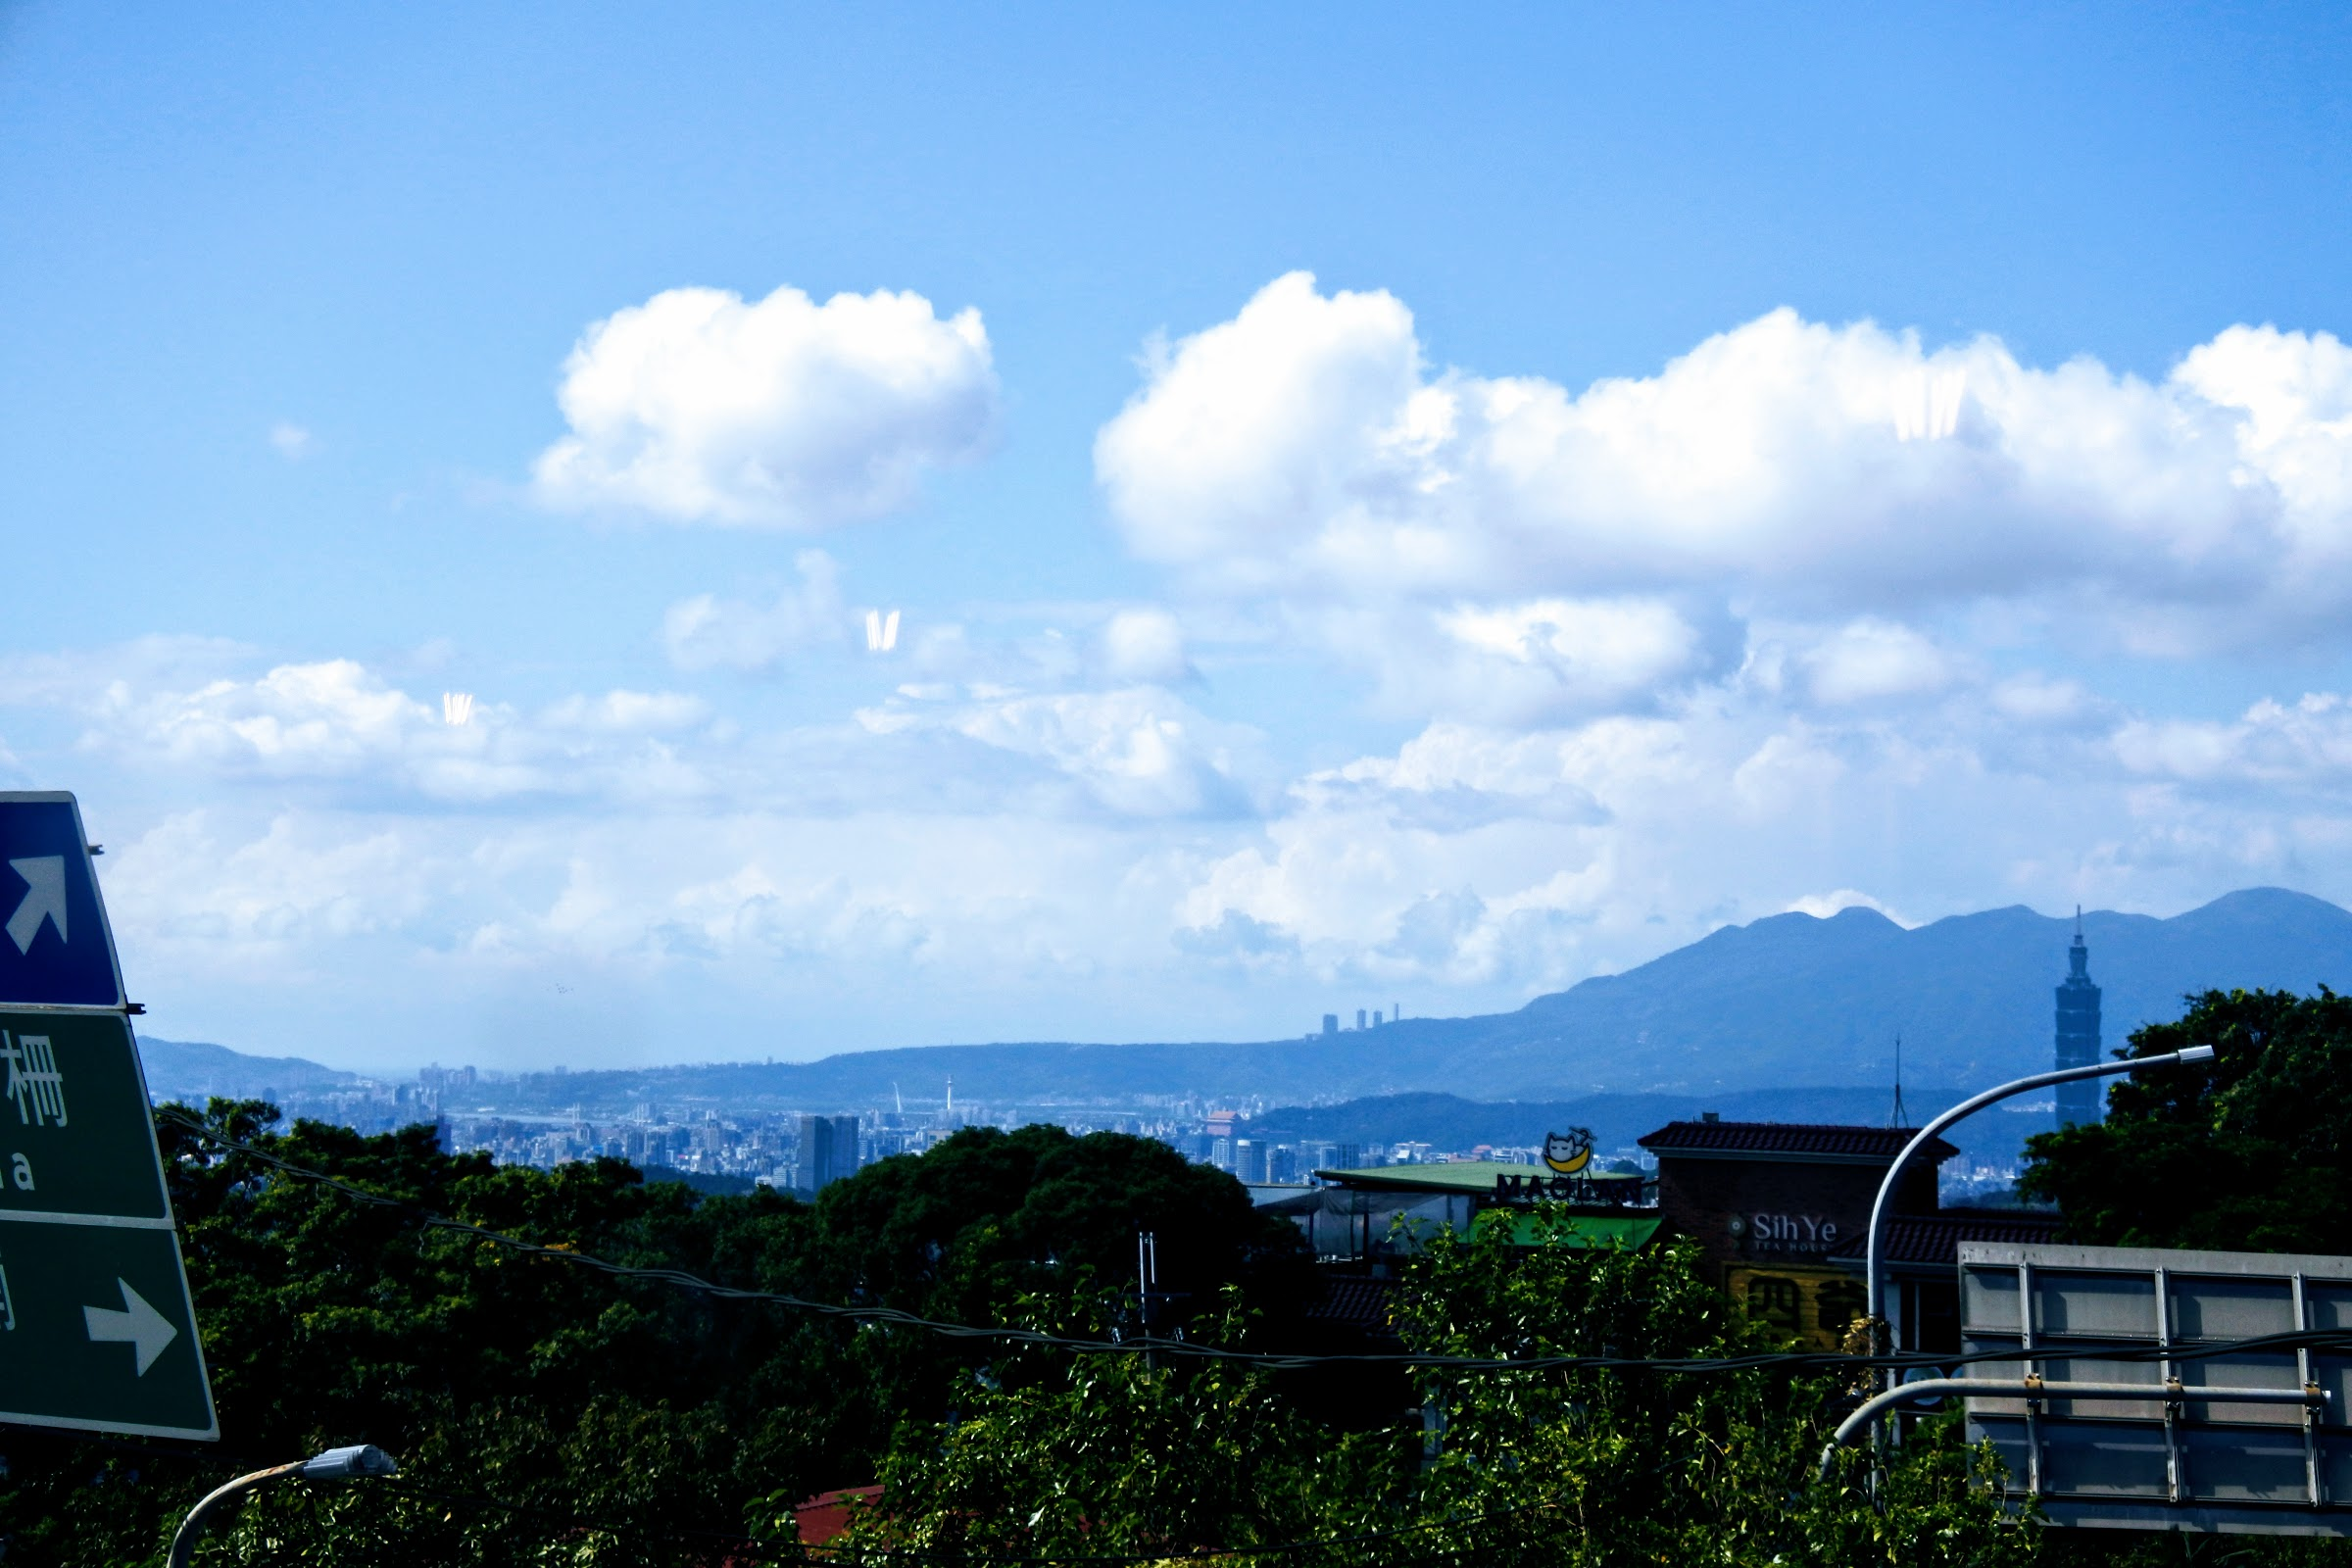 Maokong can also be visited during 3 nights in Taiwan trip